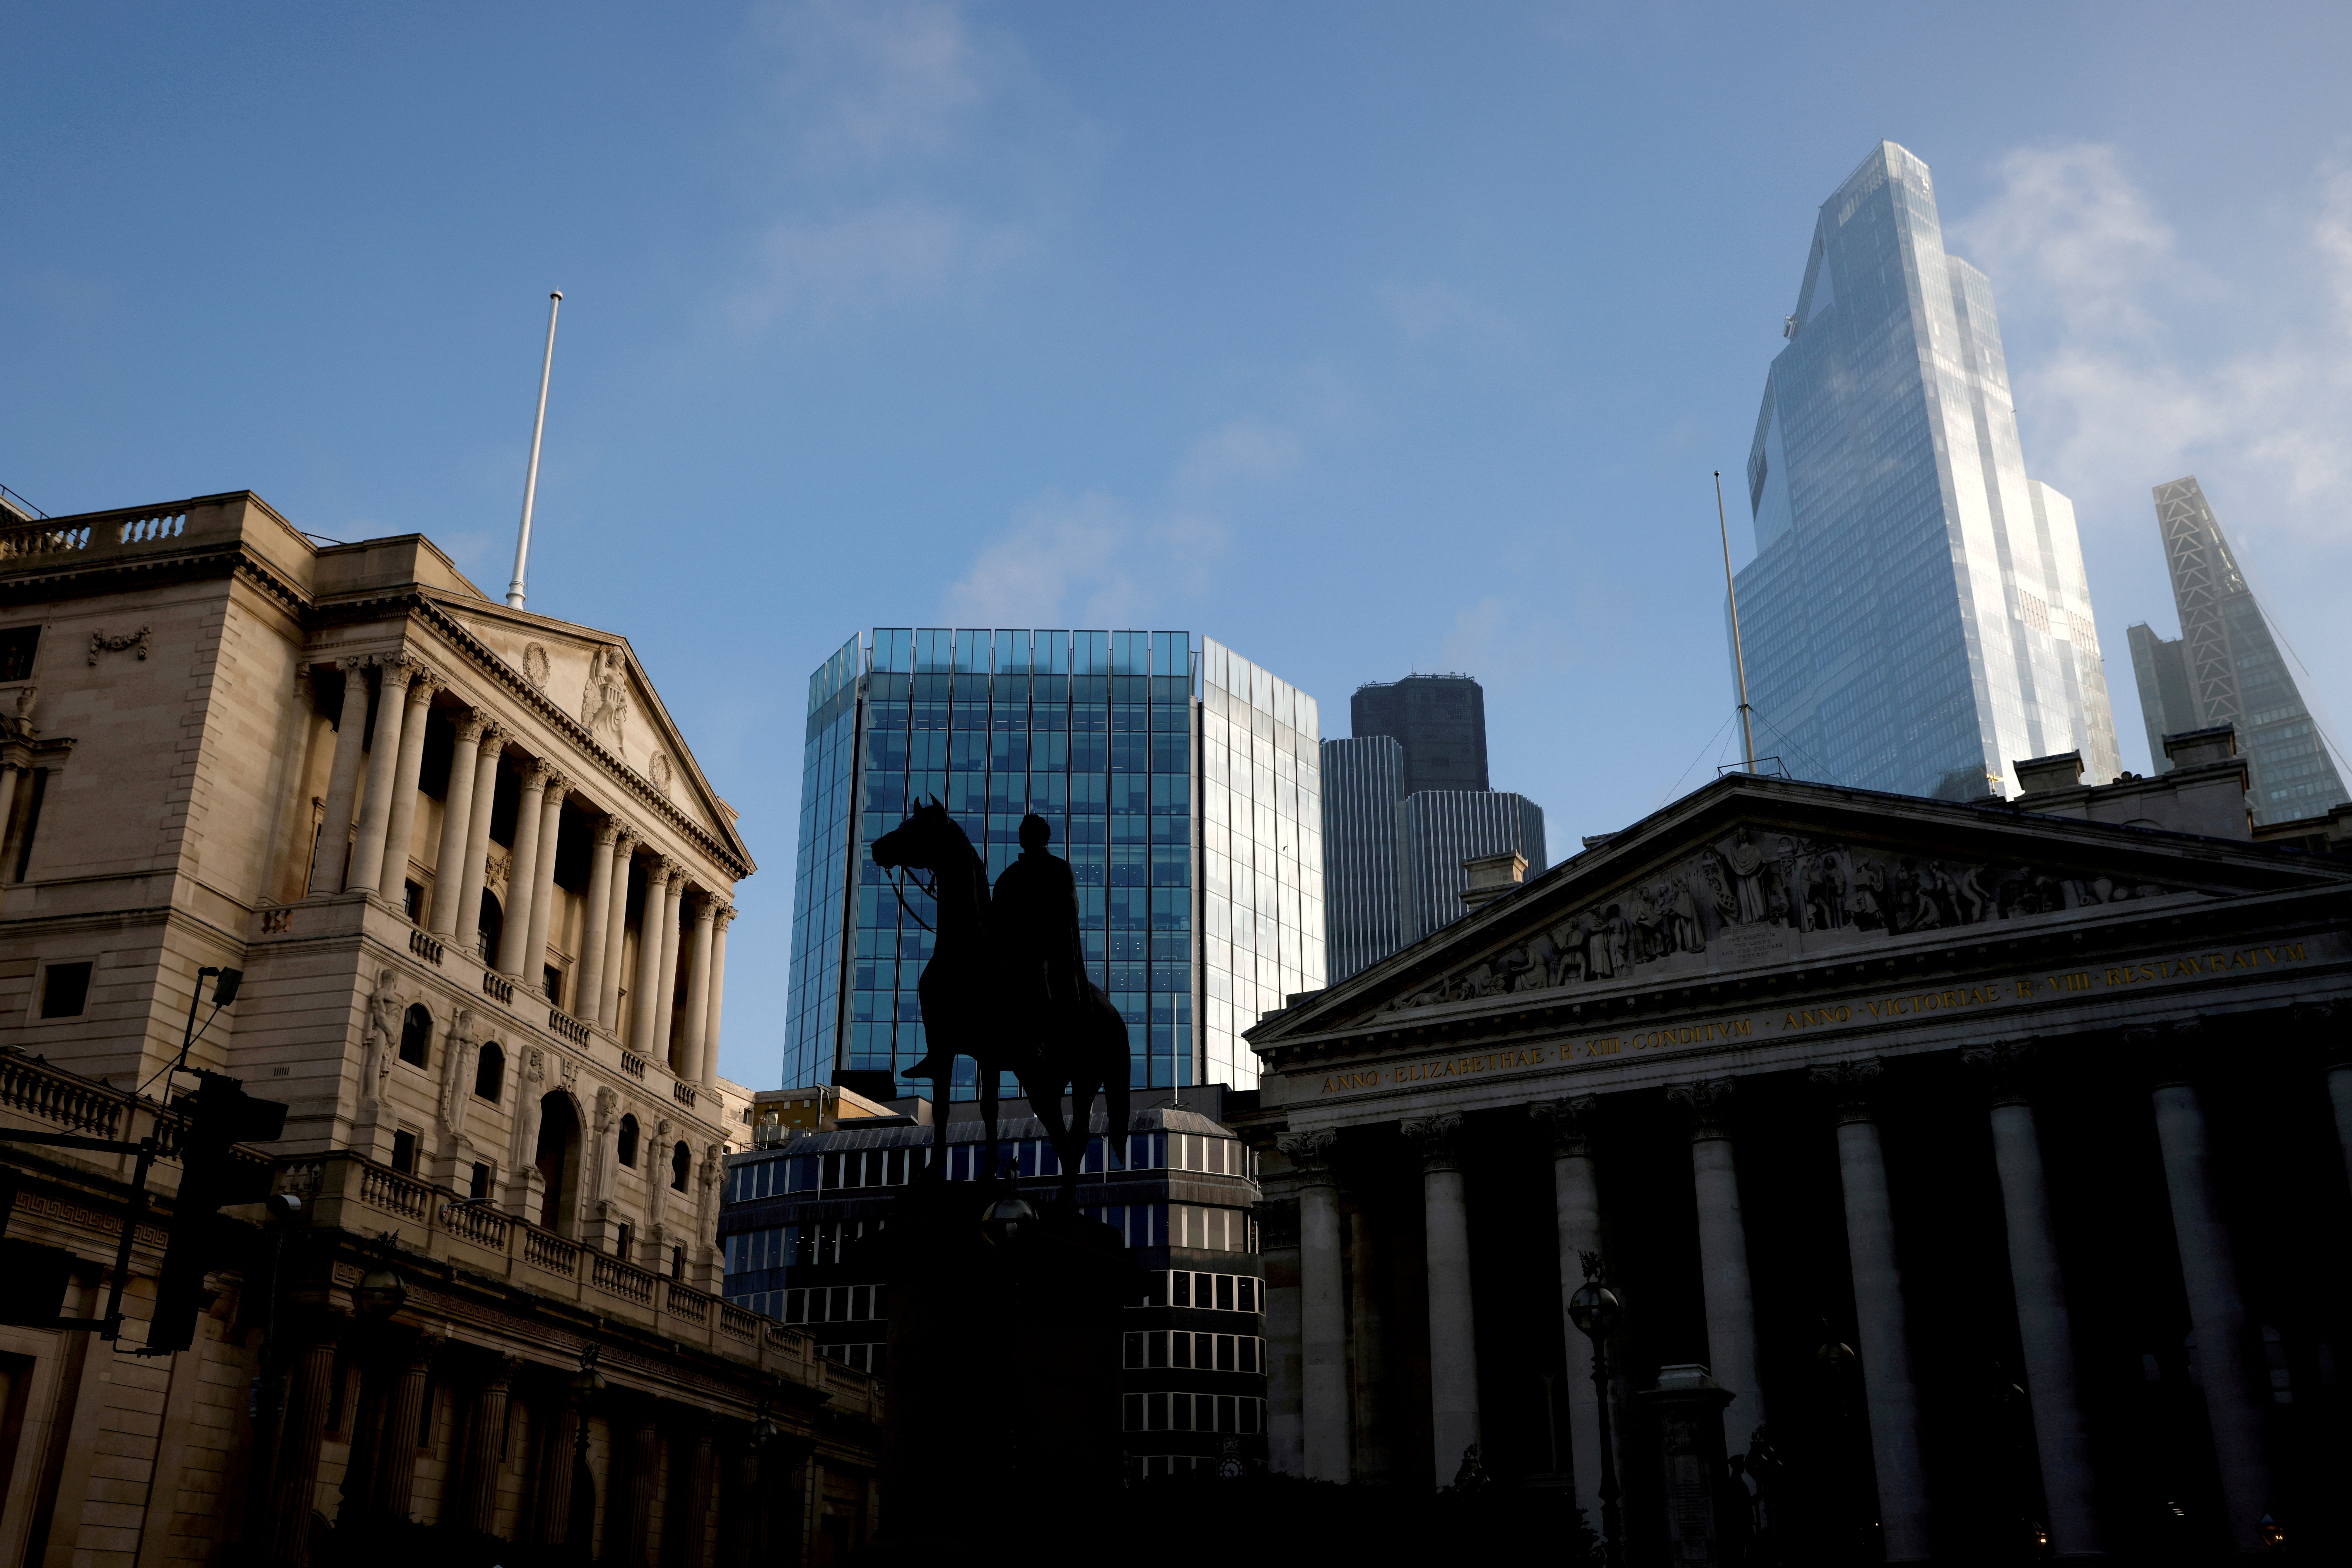 The Bank of England and the City of London financial district in London, Britain, November 5, 2020. REUTERS/John Sibley/File Photo